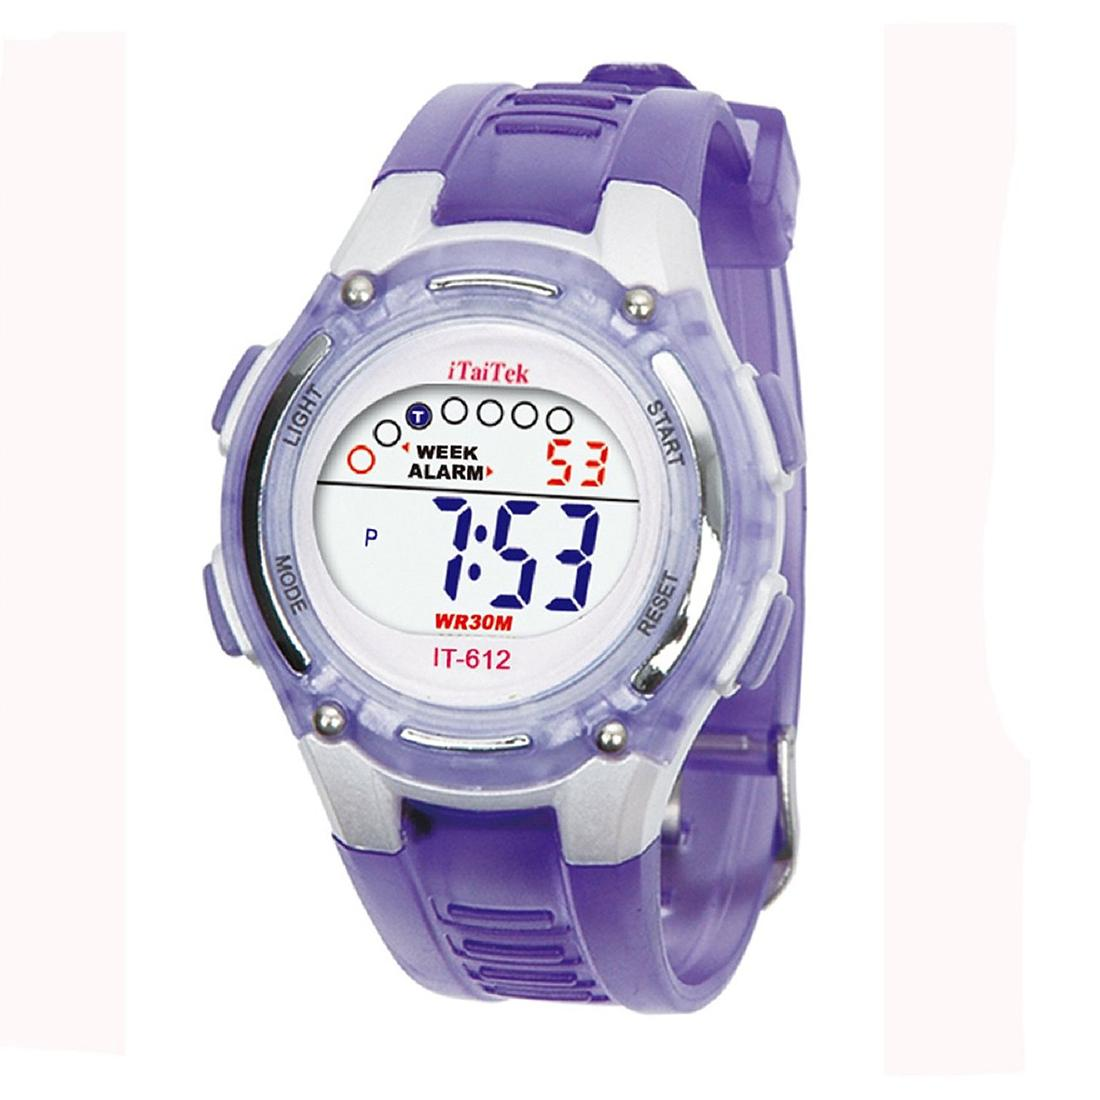 ITaiTek Kids Swimming Digital Sports Waterproof Wrist Watch (Purple) Malaysia